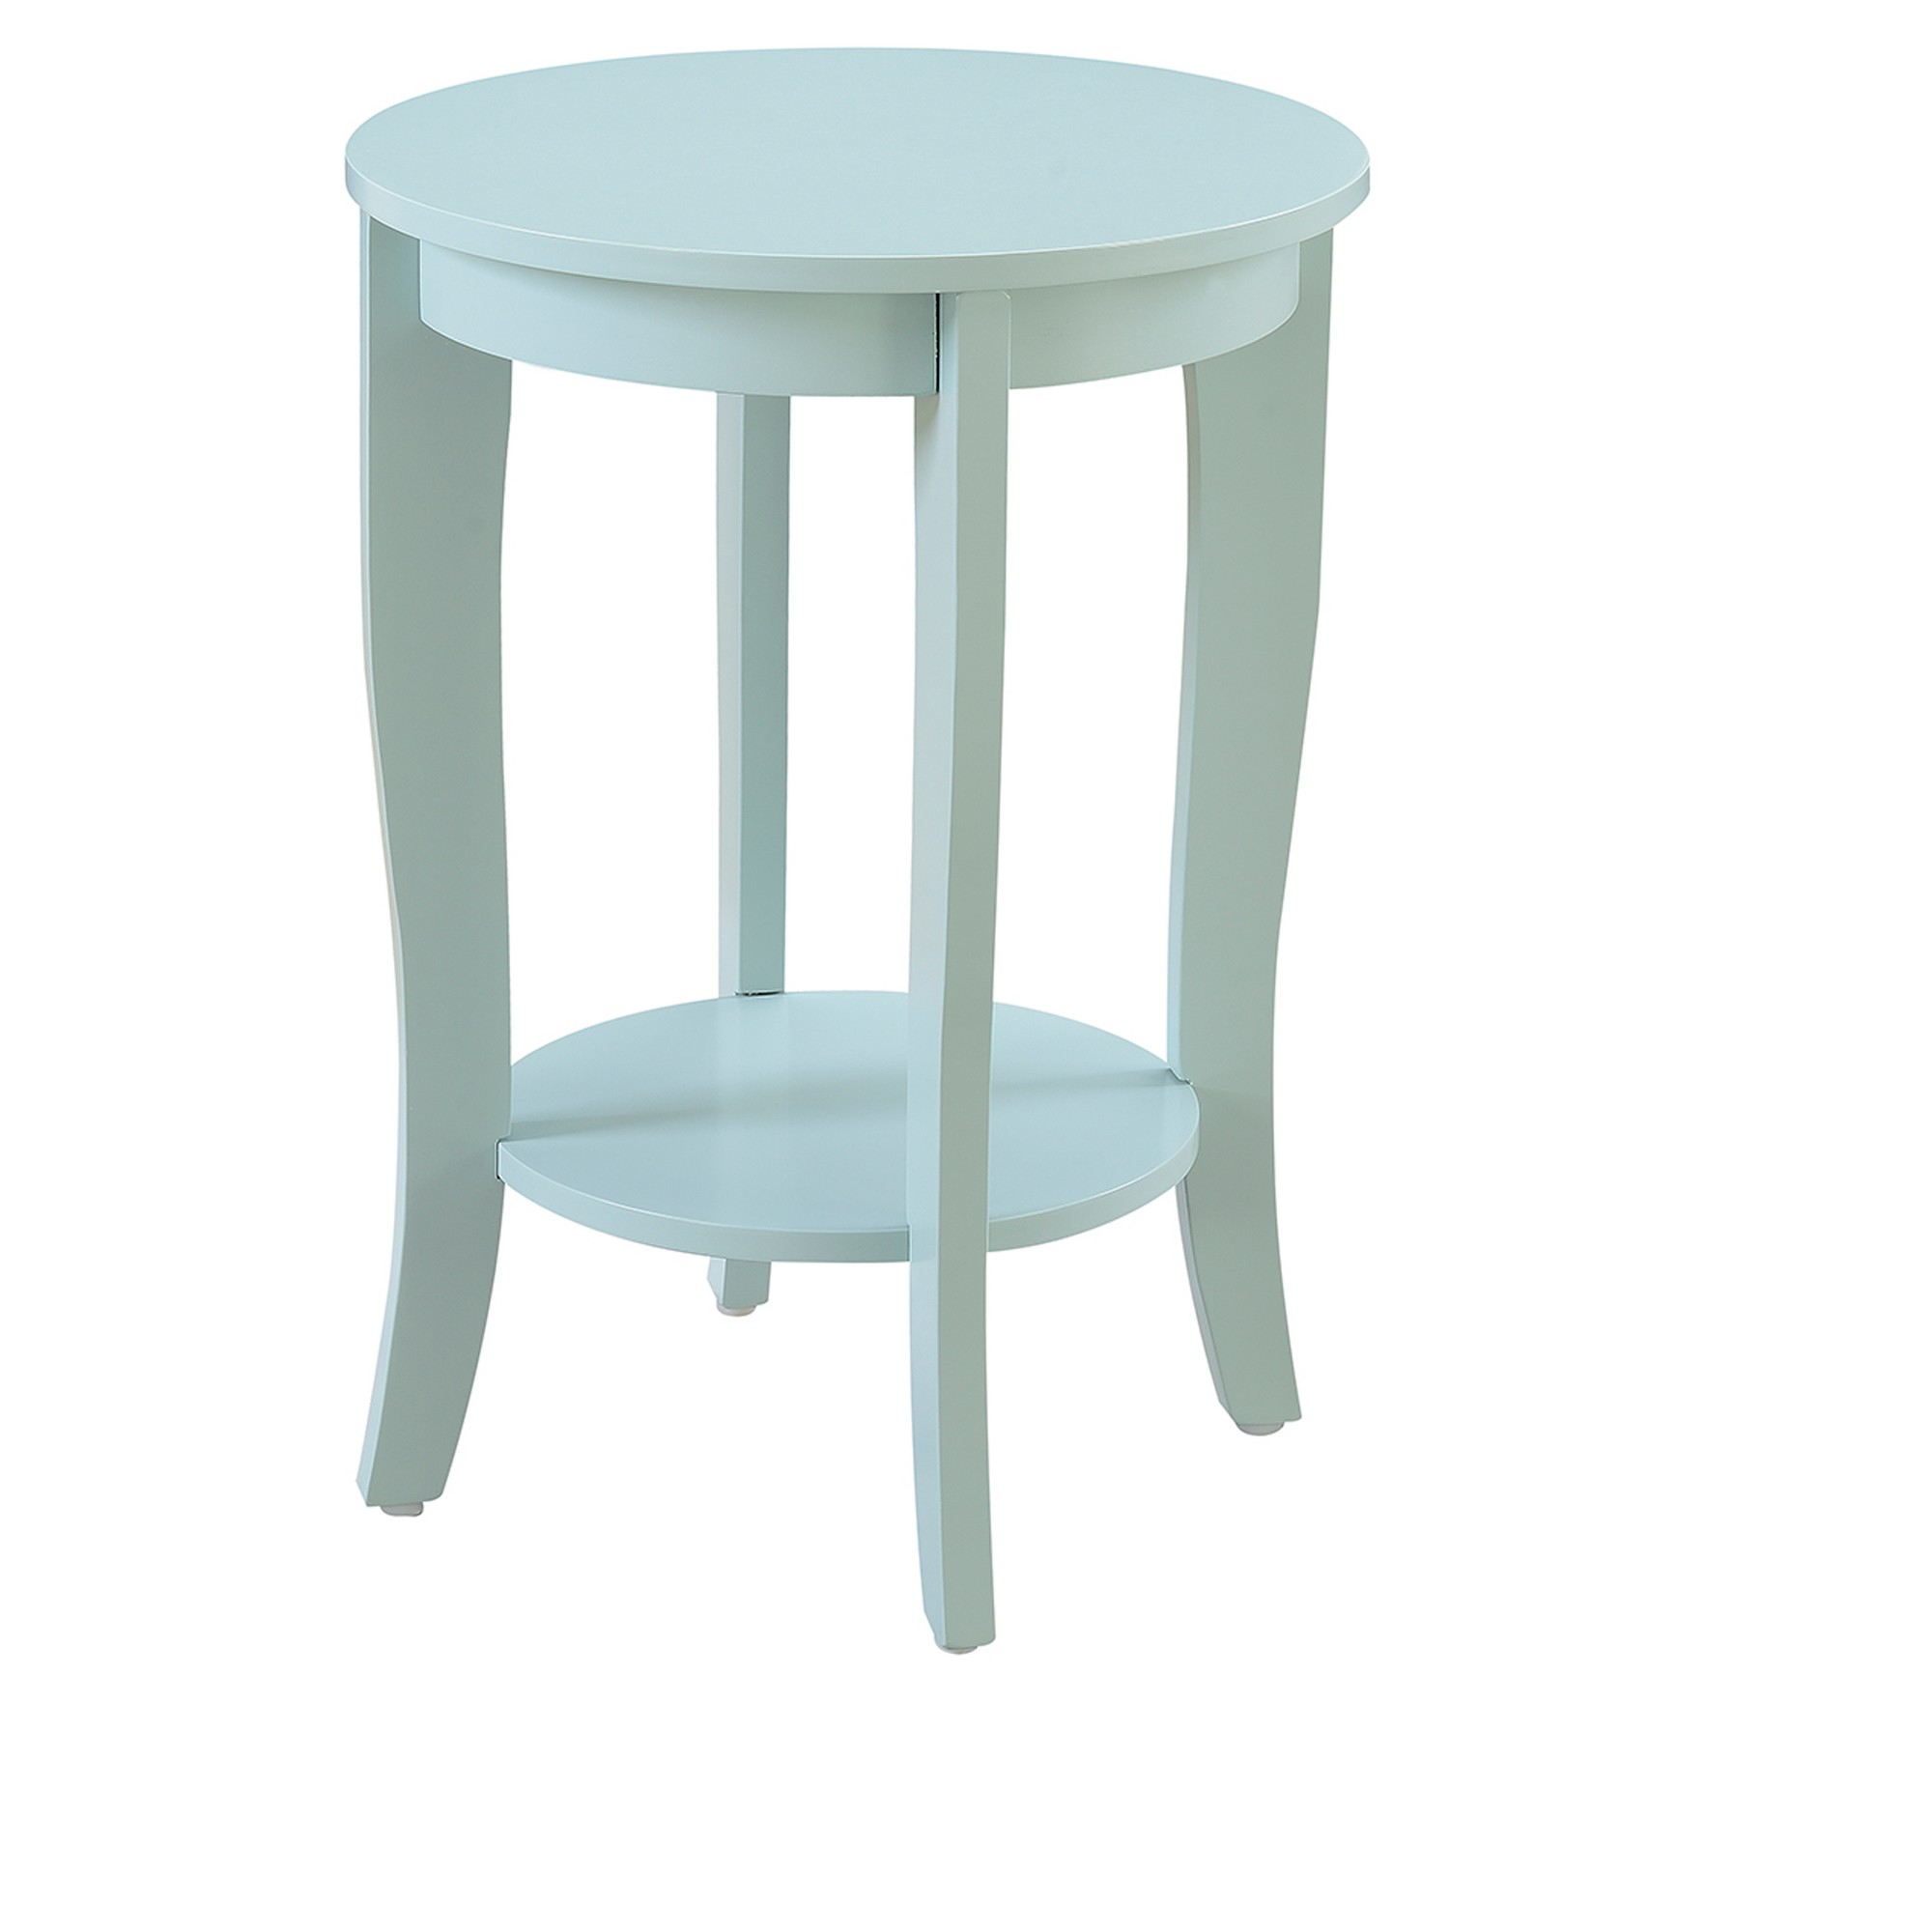 american heritage round end table sea foam blue johar target accent furniture oak tables with storage mosaic and chairs removable legs living room nesting small folding industrial